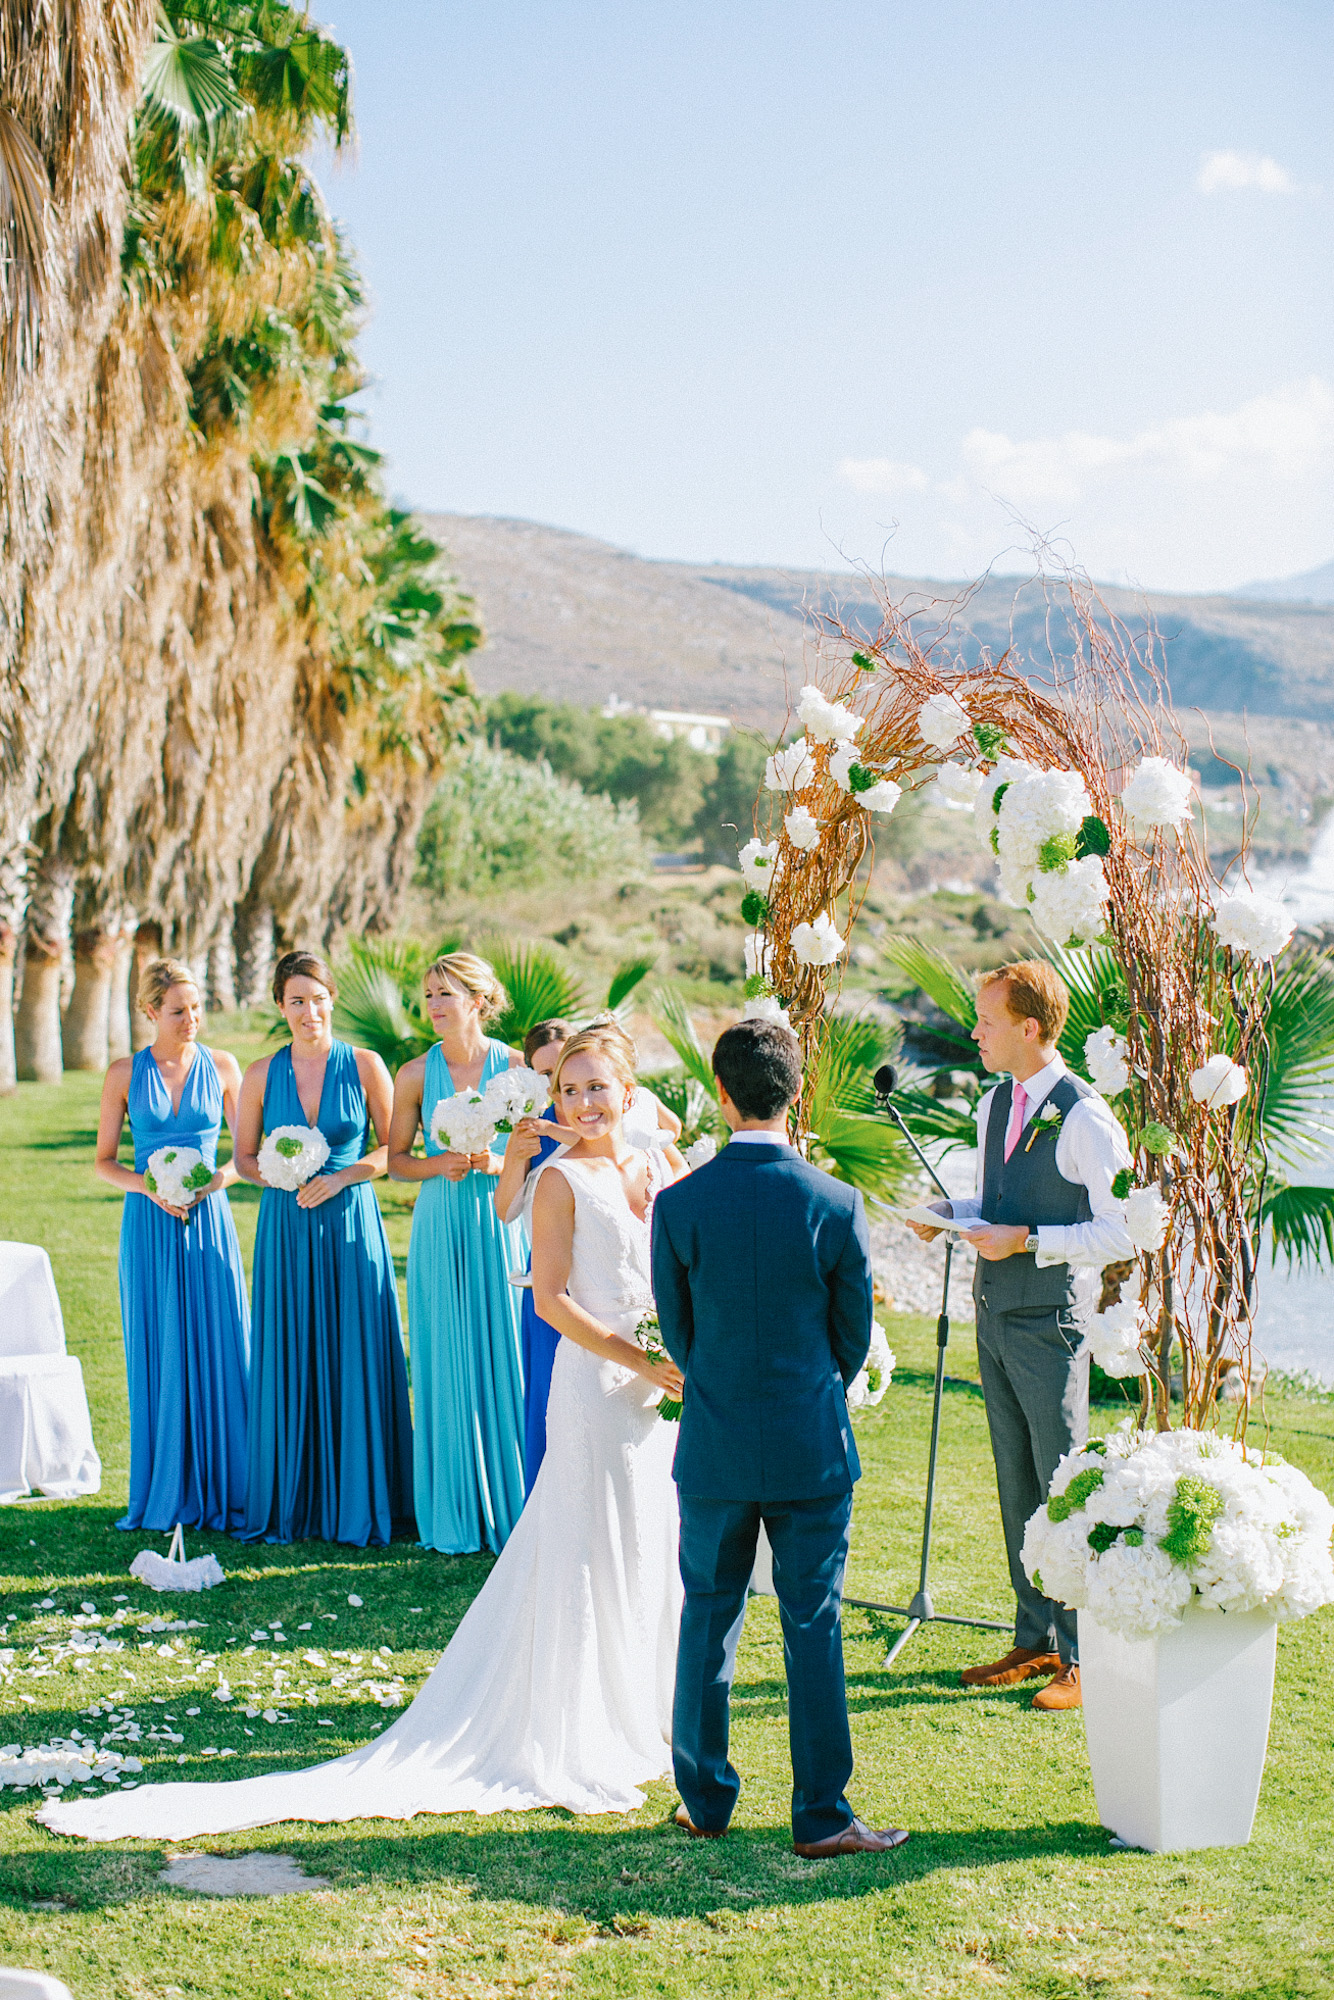 Portrait of a bride and groom during their afternoon wedding ceremony in palm tree wedding estate in Rethymno Crete photographer by a professional destination wedding photographer.